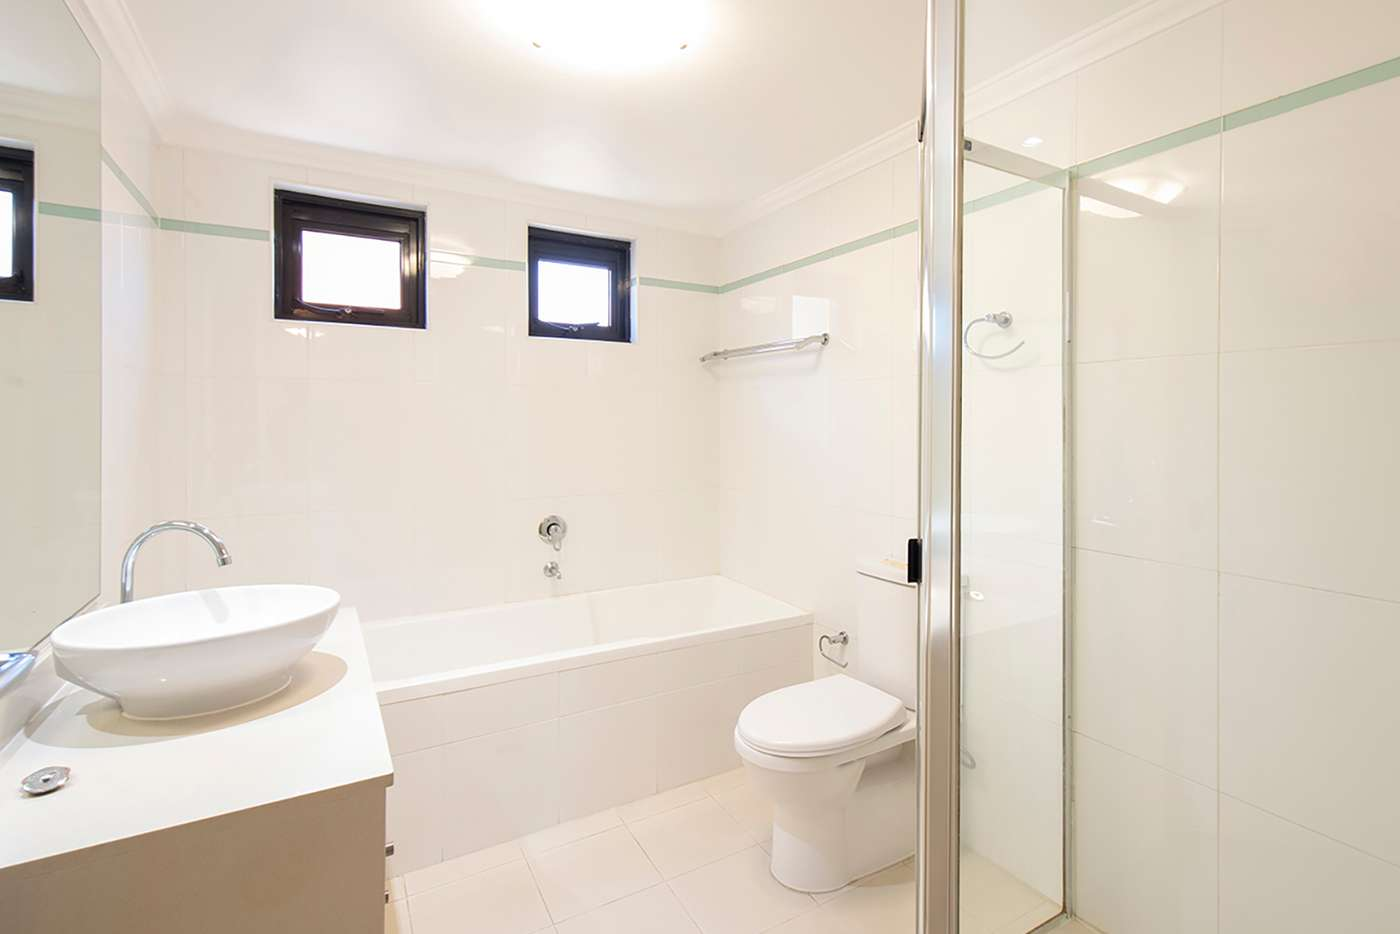 Seventh view of Homely apartment listing, 25/13 Herbert Street, St Leonards NSW 2065